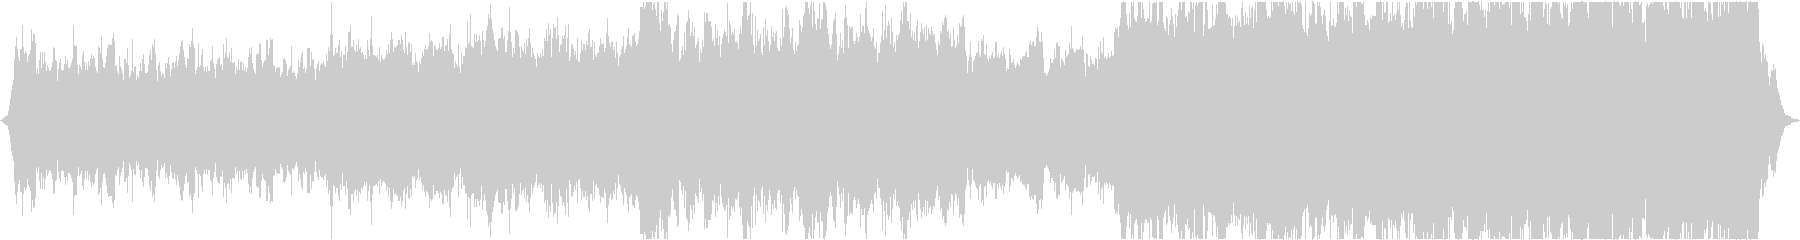 Beautiful Christmas string melody's unreproduced waveform